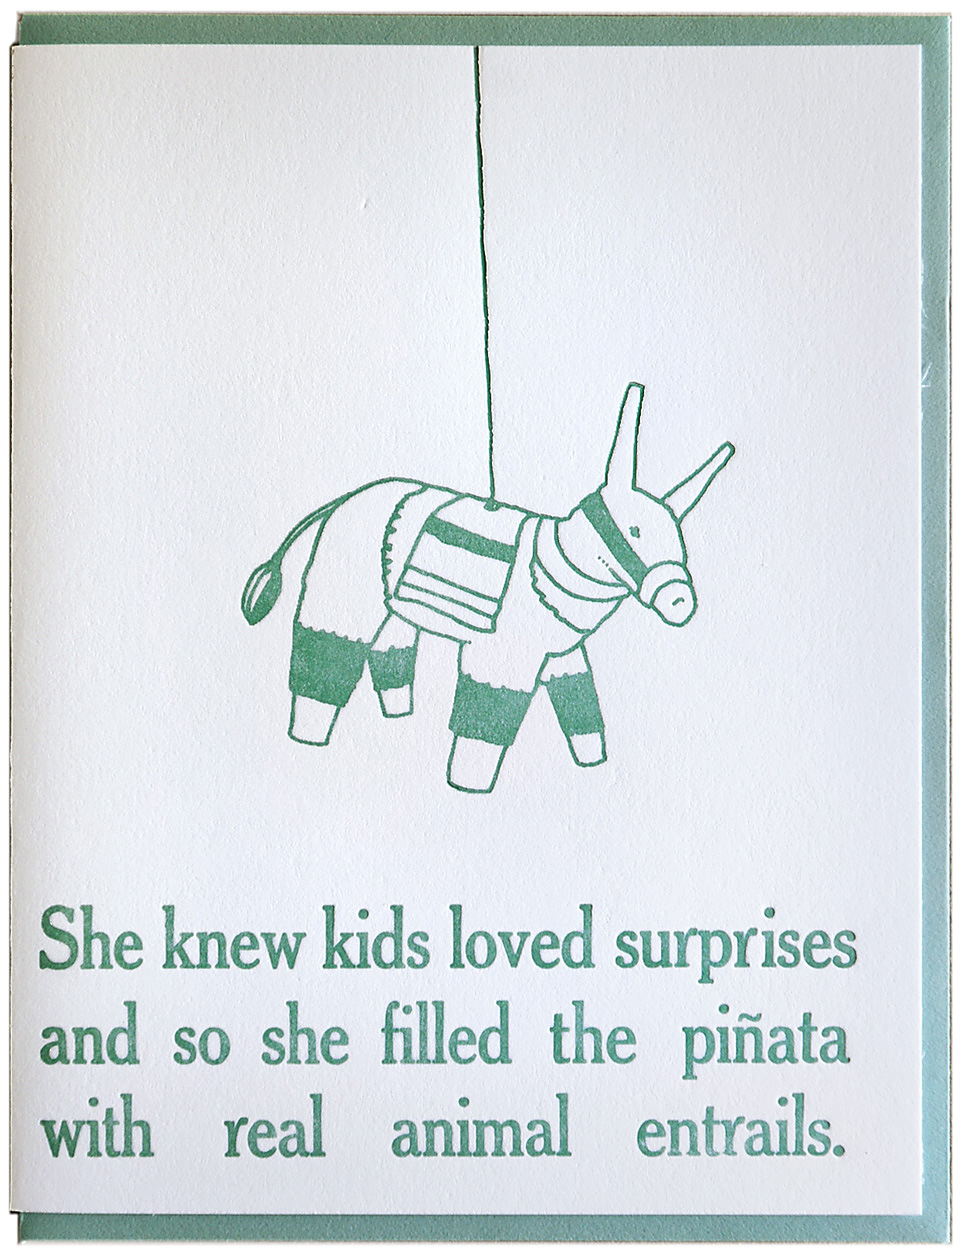 She knew kids loved surprises and so she filled the piñata with real animal entrails. Letterpress printed on recycled paper. Comes with coordinating envelope and packaged in cellophane sleeve.